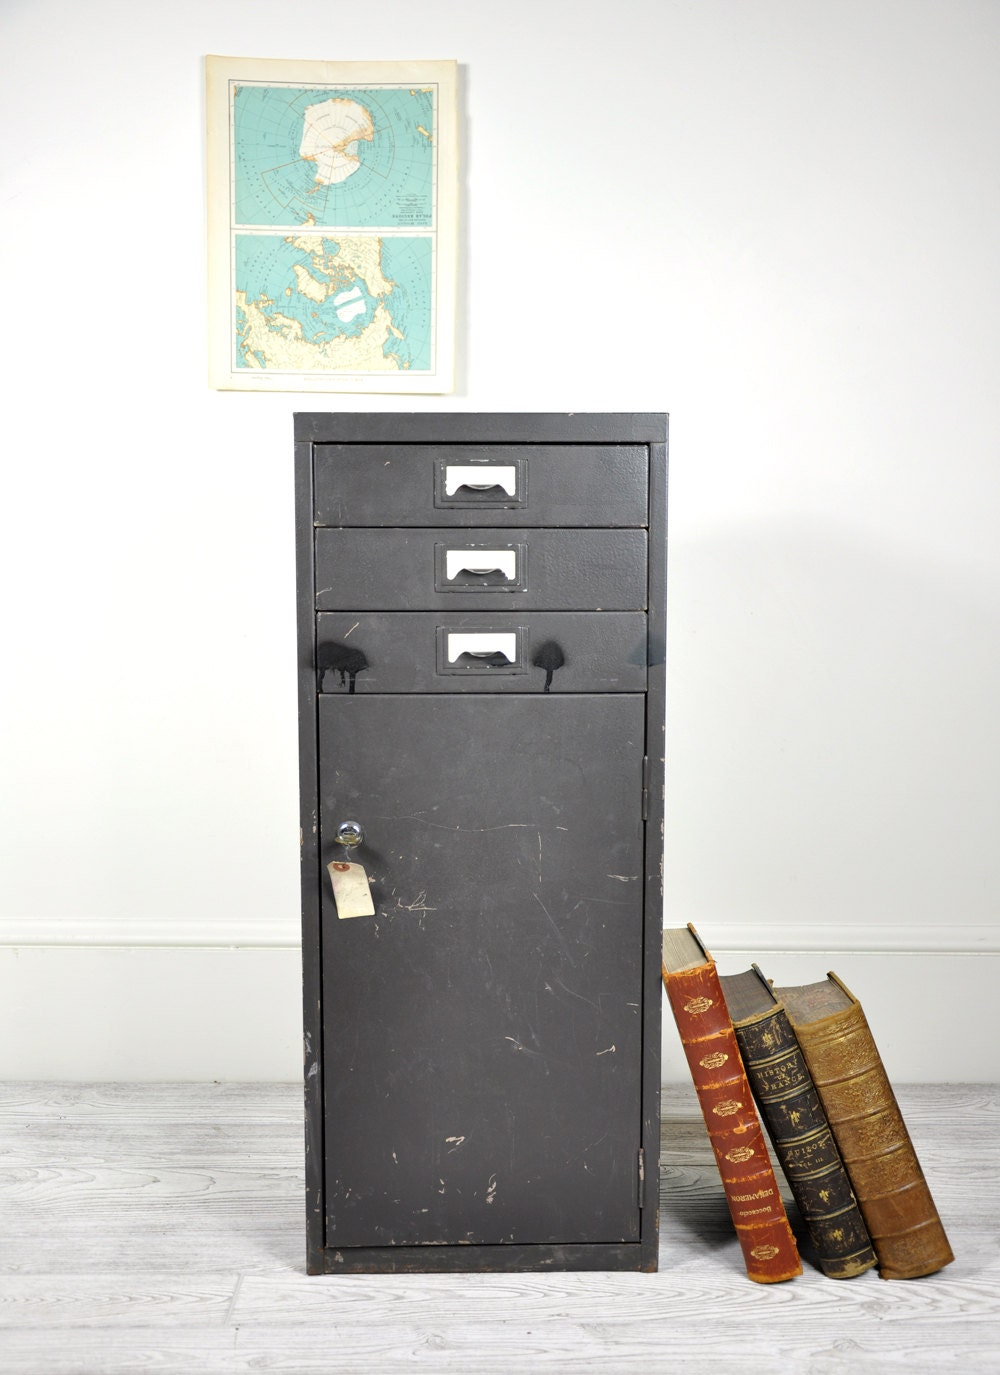 Perfect Office Metal Black Cabinet Industrial Vintage Style Storage Unit With 27 Compartments Featuring Copper Plated Label Holders Against Black Metal, &163989